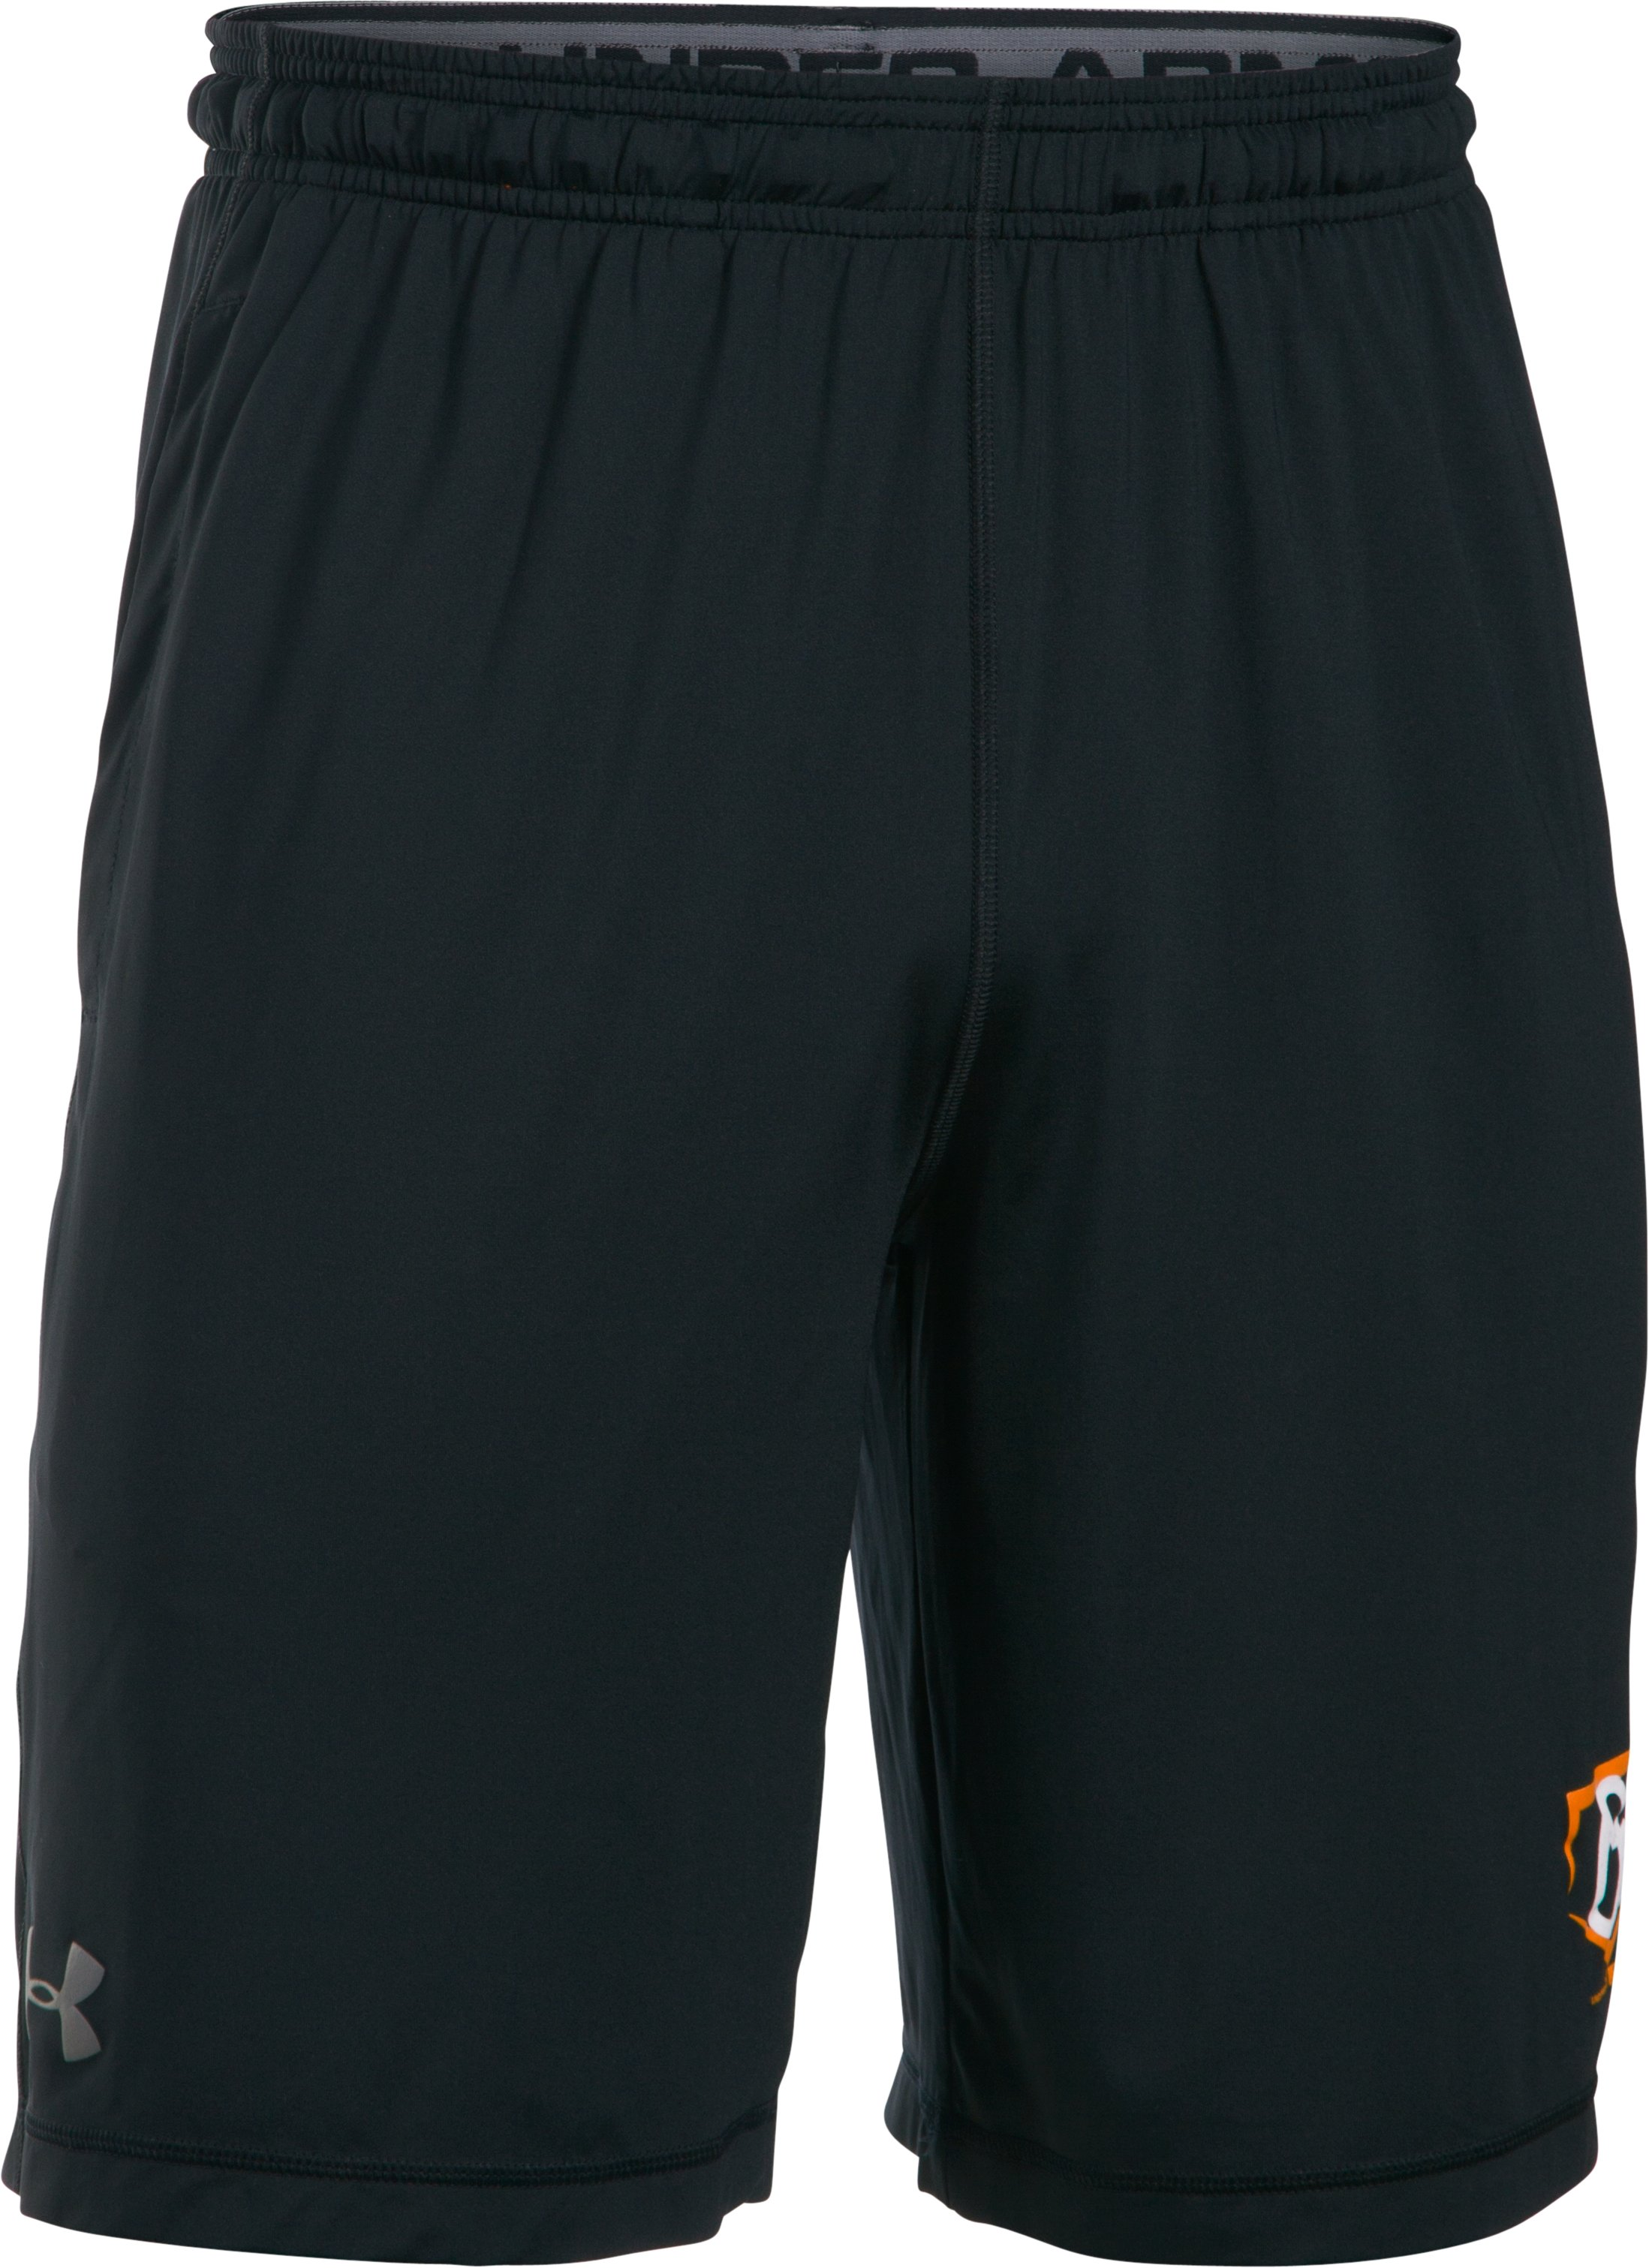 Men's Baltimore Orioles Raid Shorts, Black